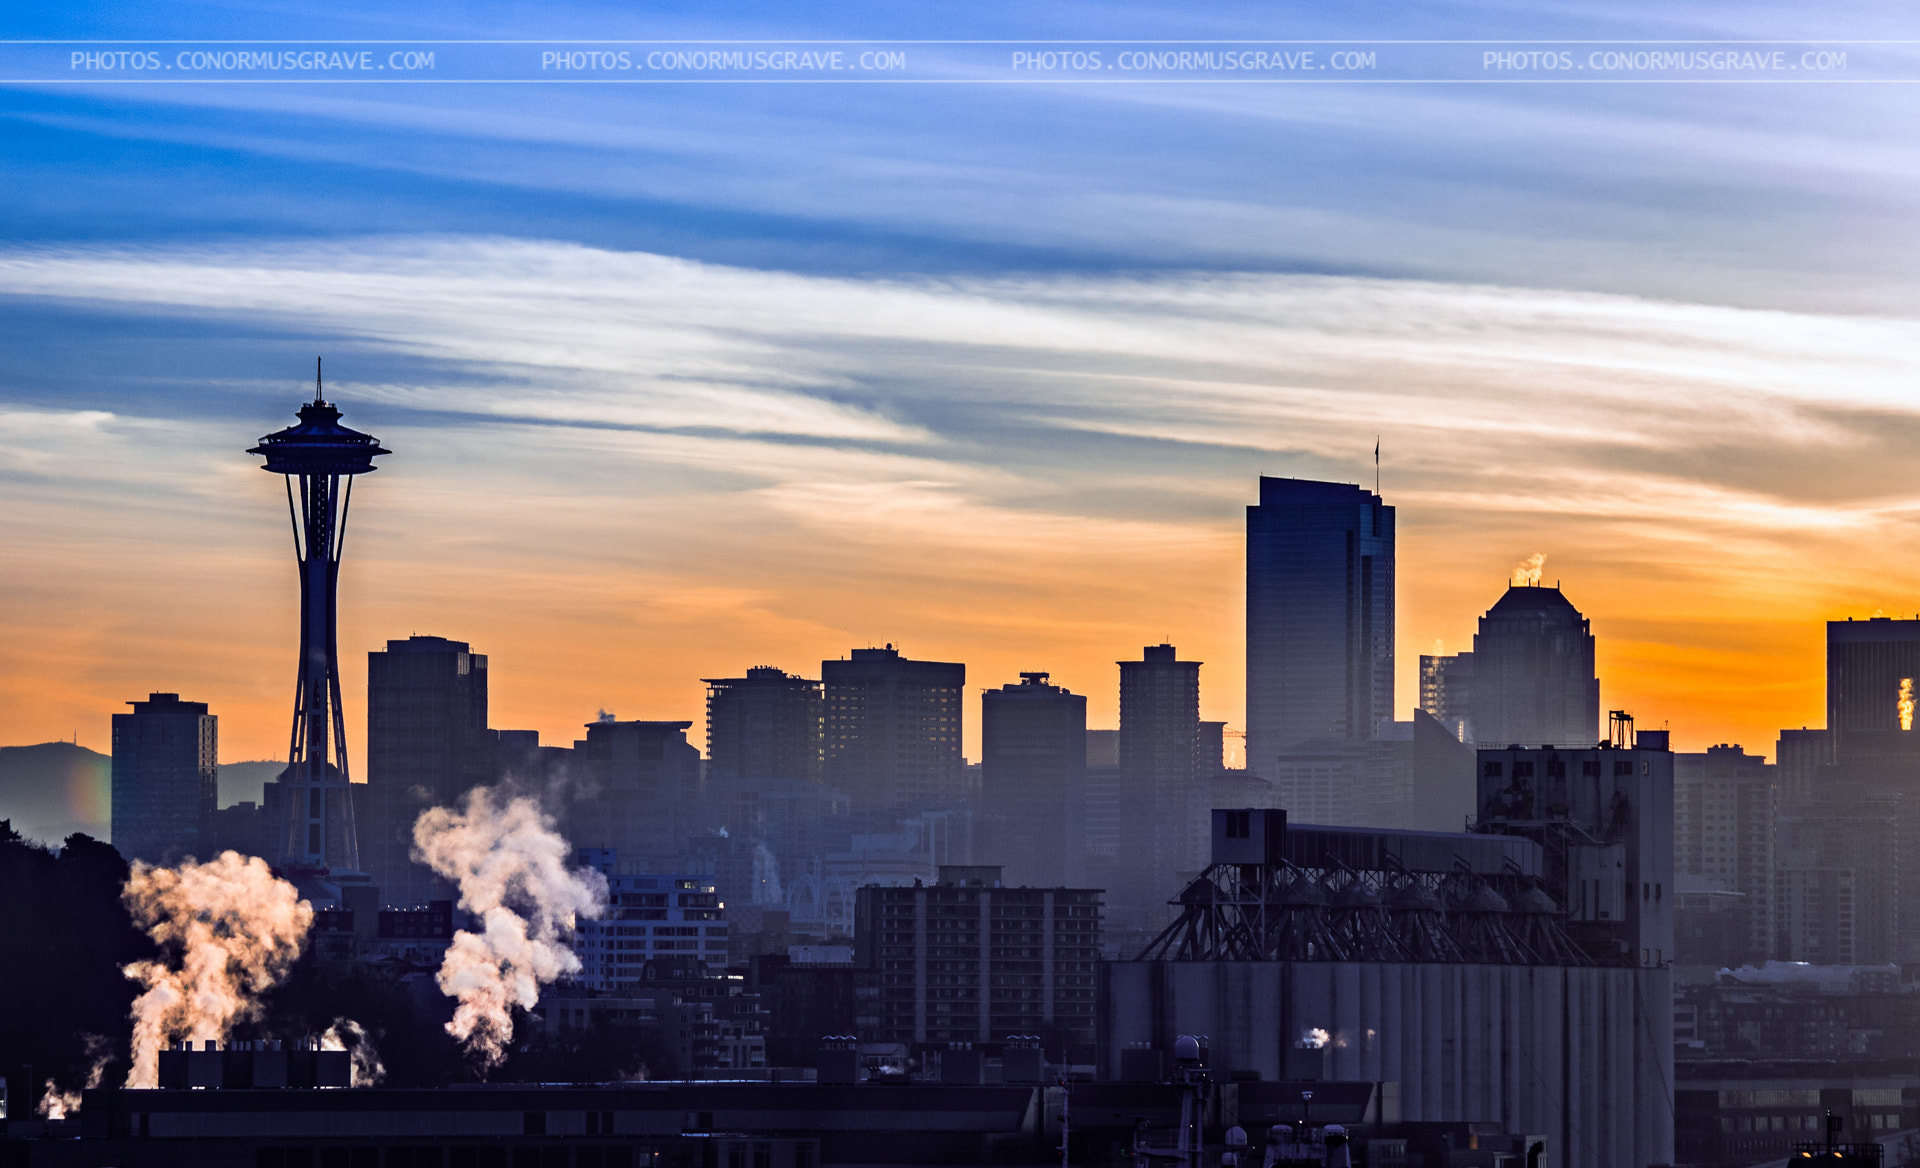 Photograph Space Needle & Industry Sunrise by Conor Musgrave on 500px